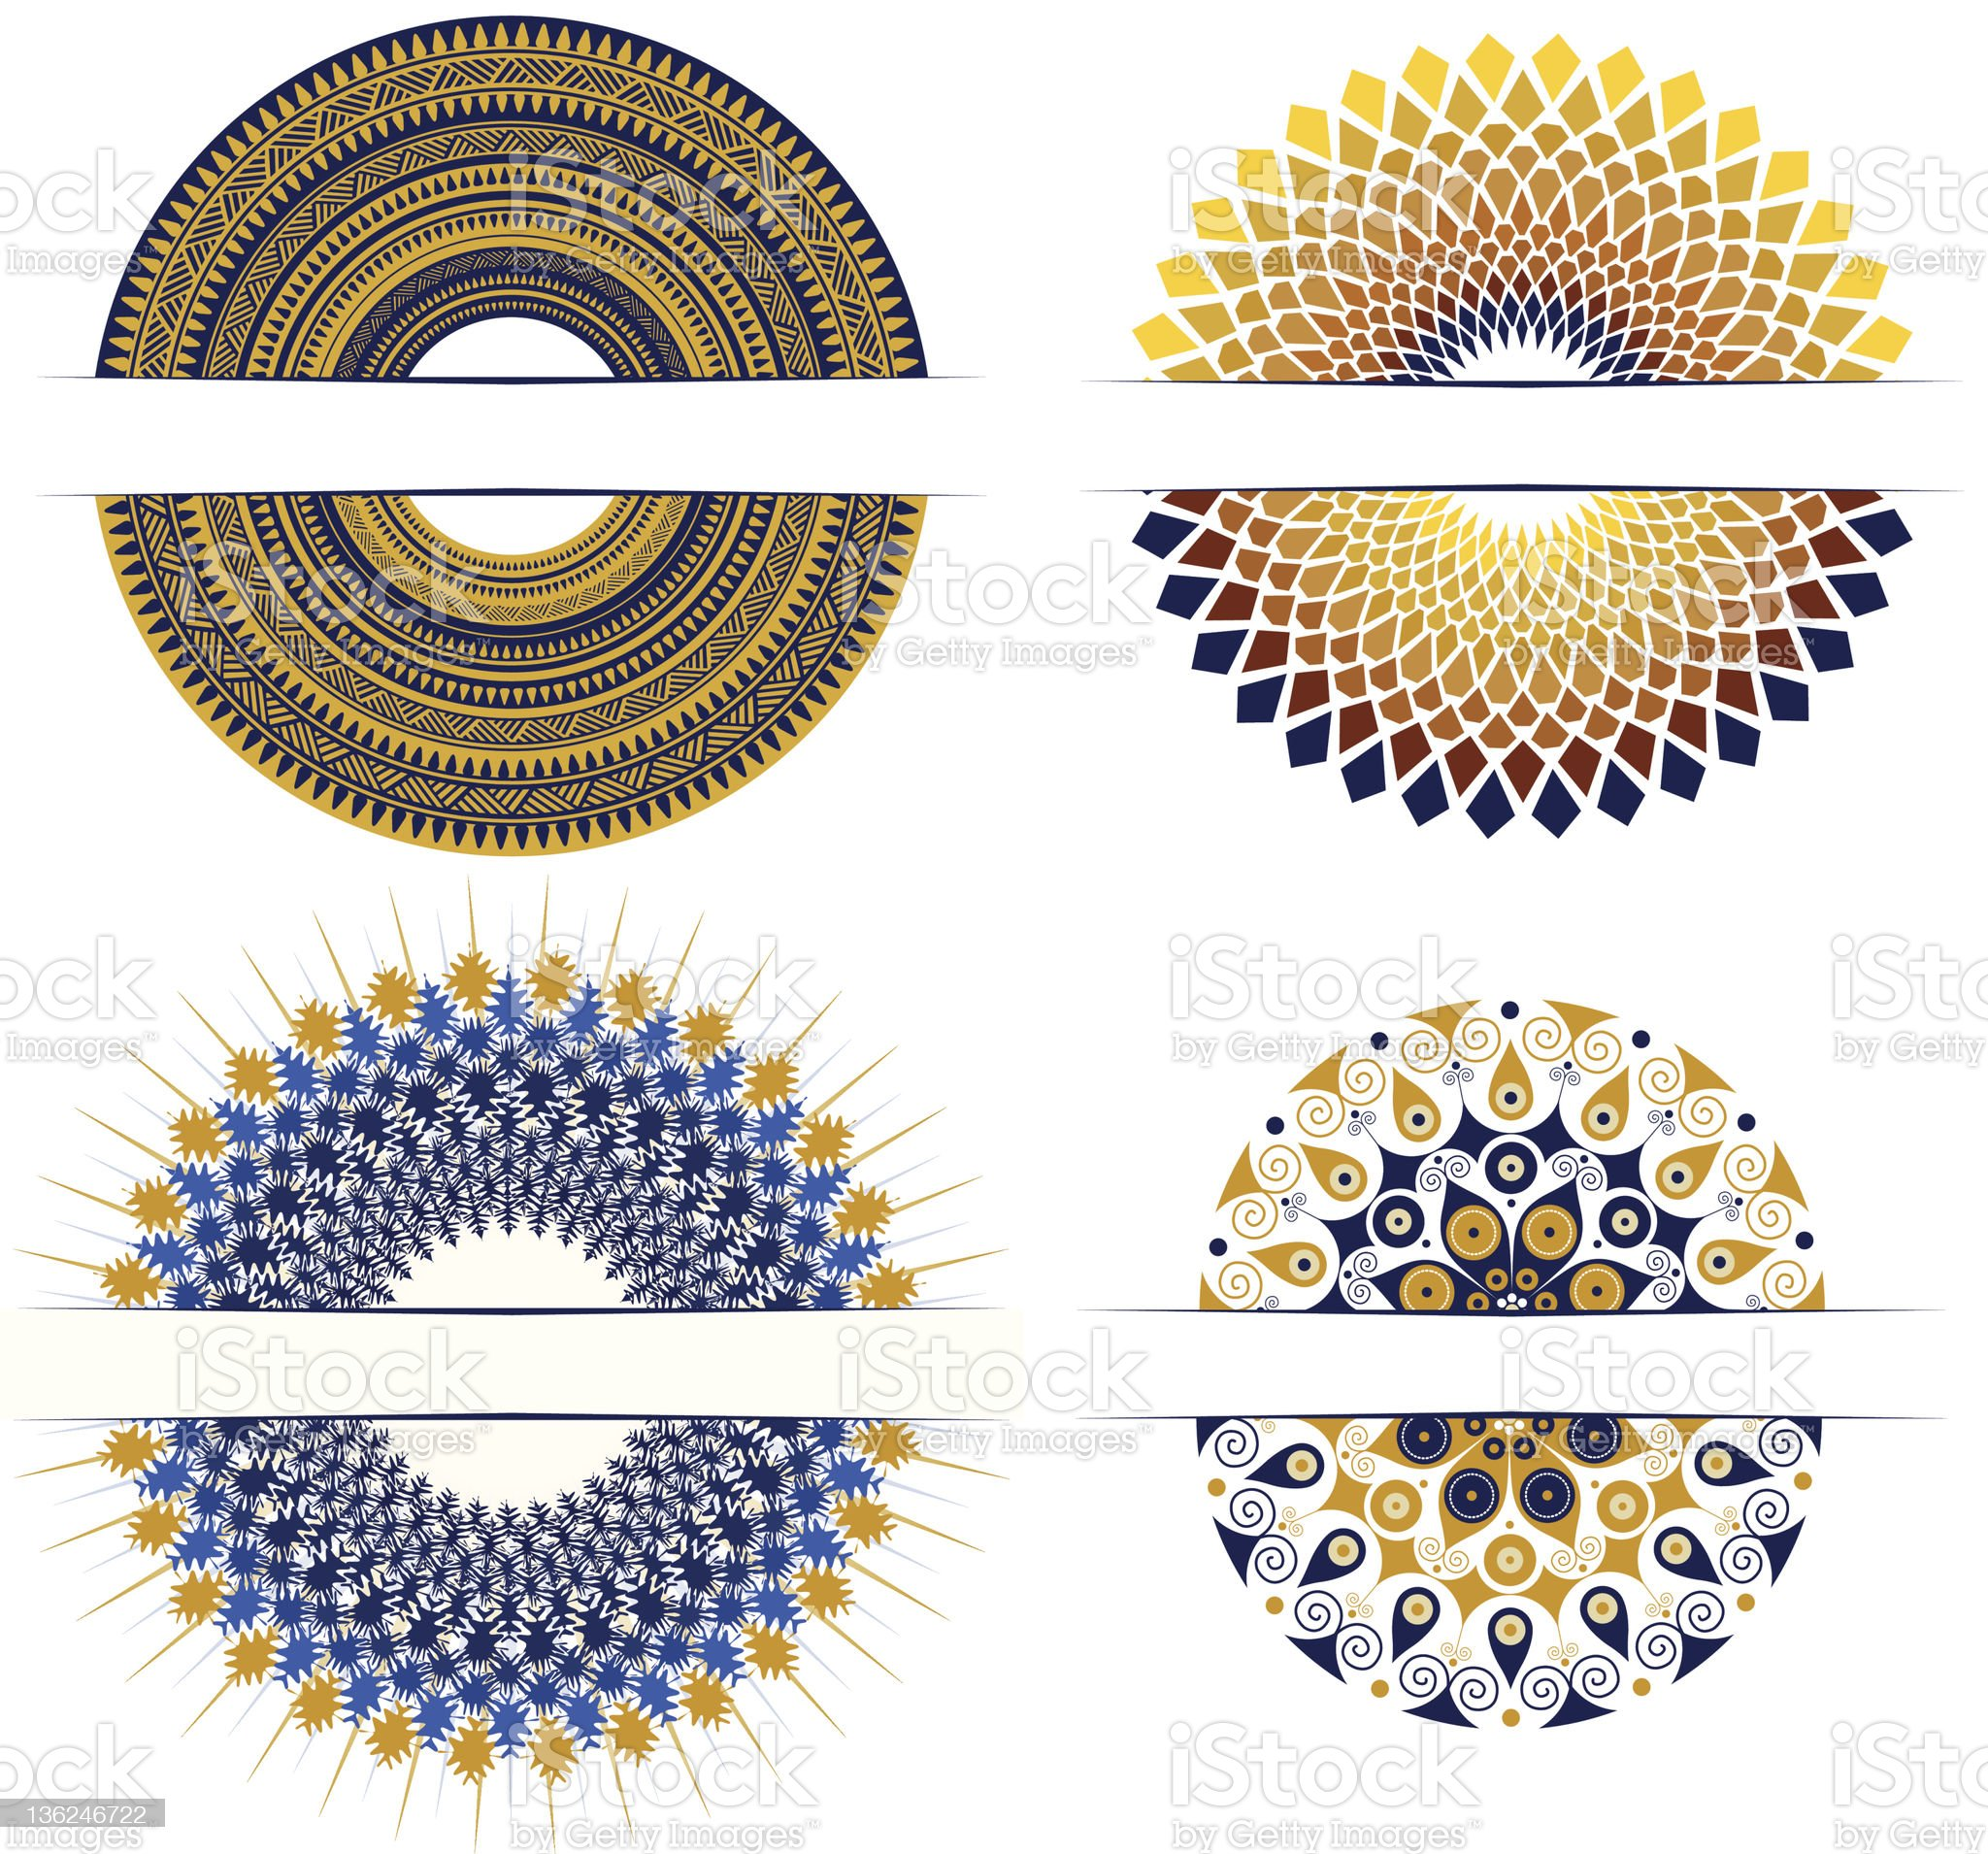 set of decorative round design elements royalty-free stock vector art